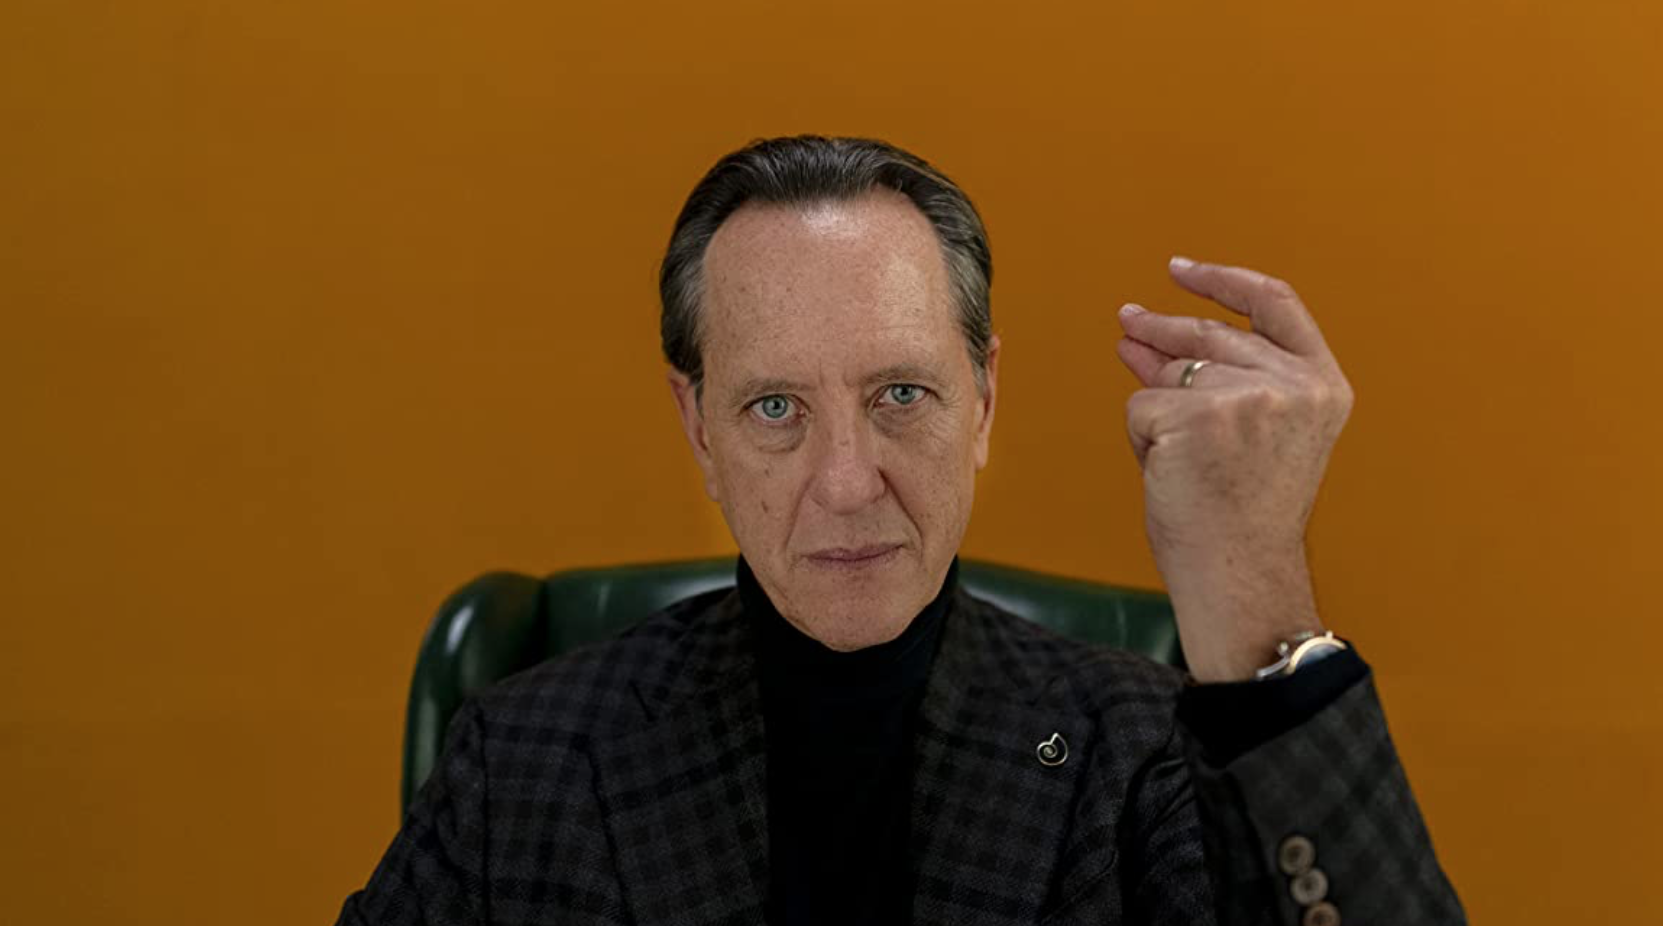 'Fado!' With Richard E Grant Is Greenlit + Soon Casting